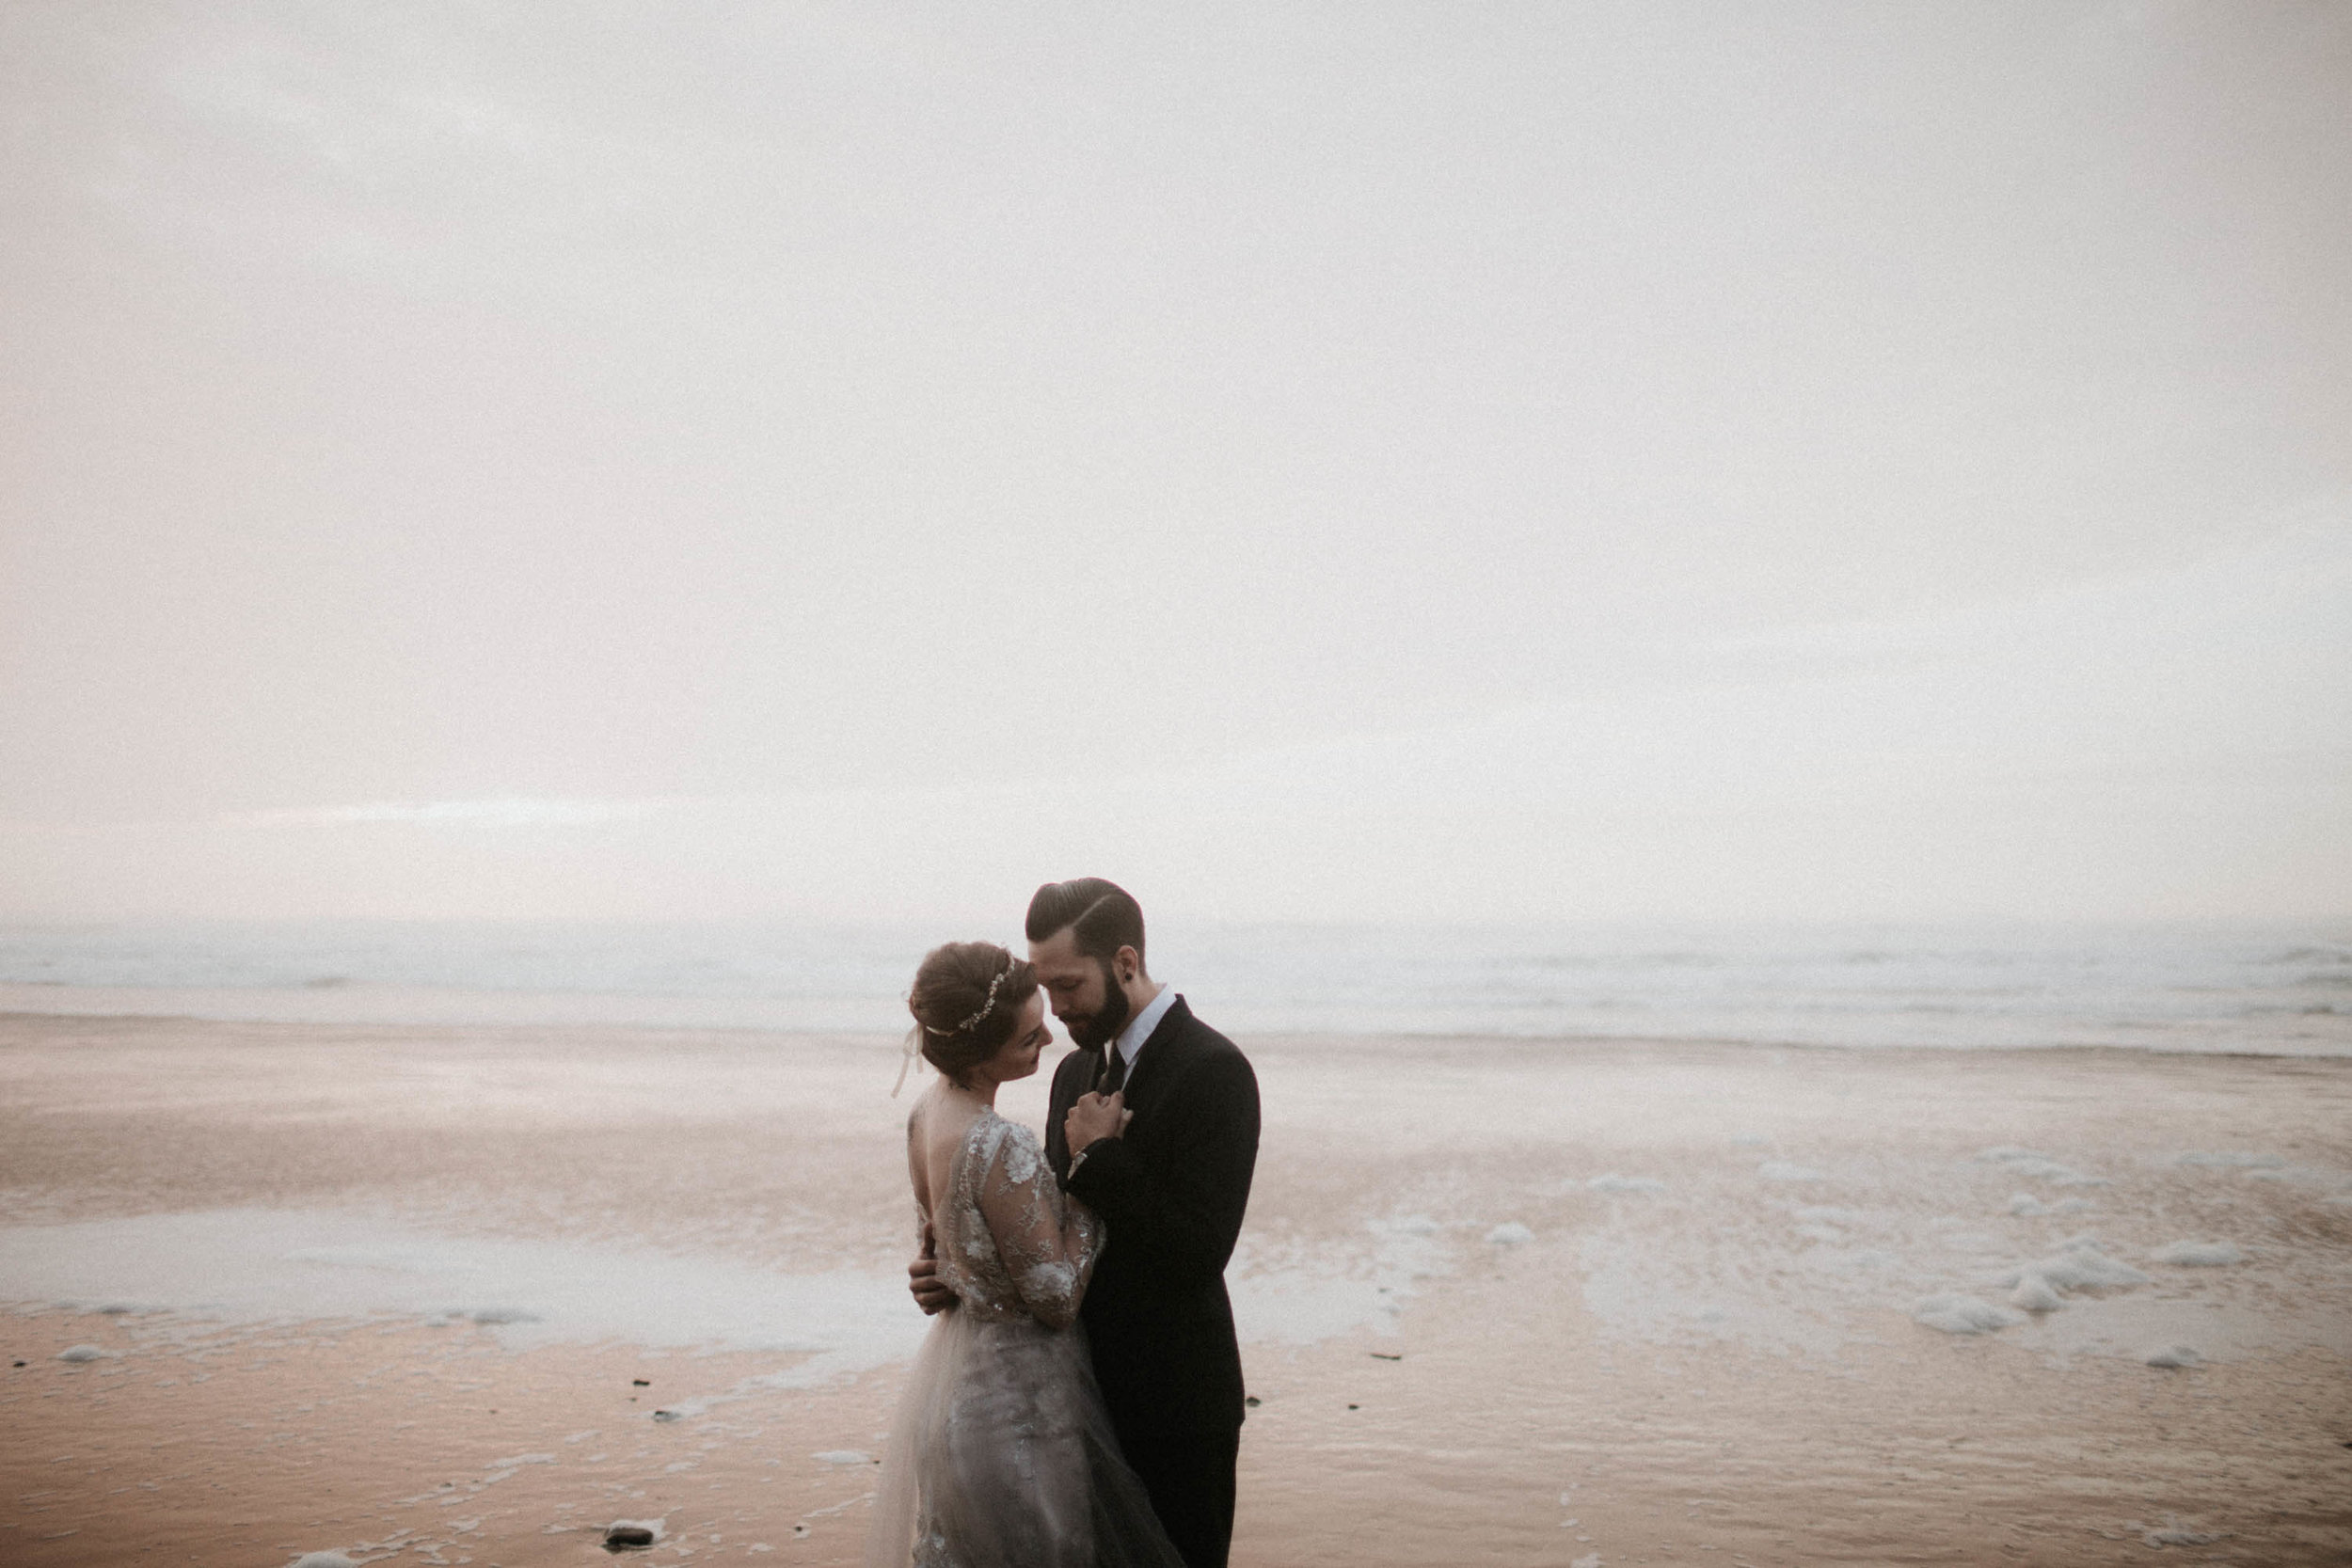 canonbeach_elopment_weddingphotographer-80.jpg